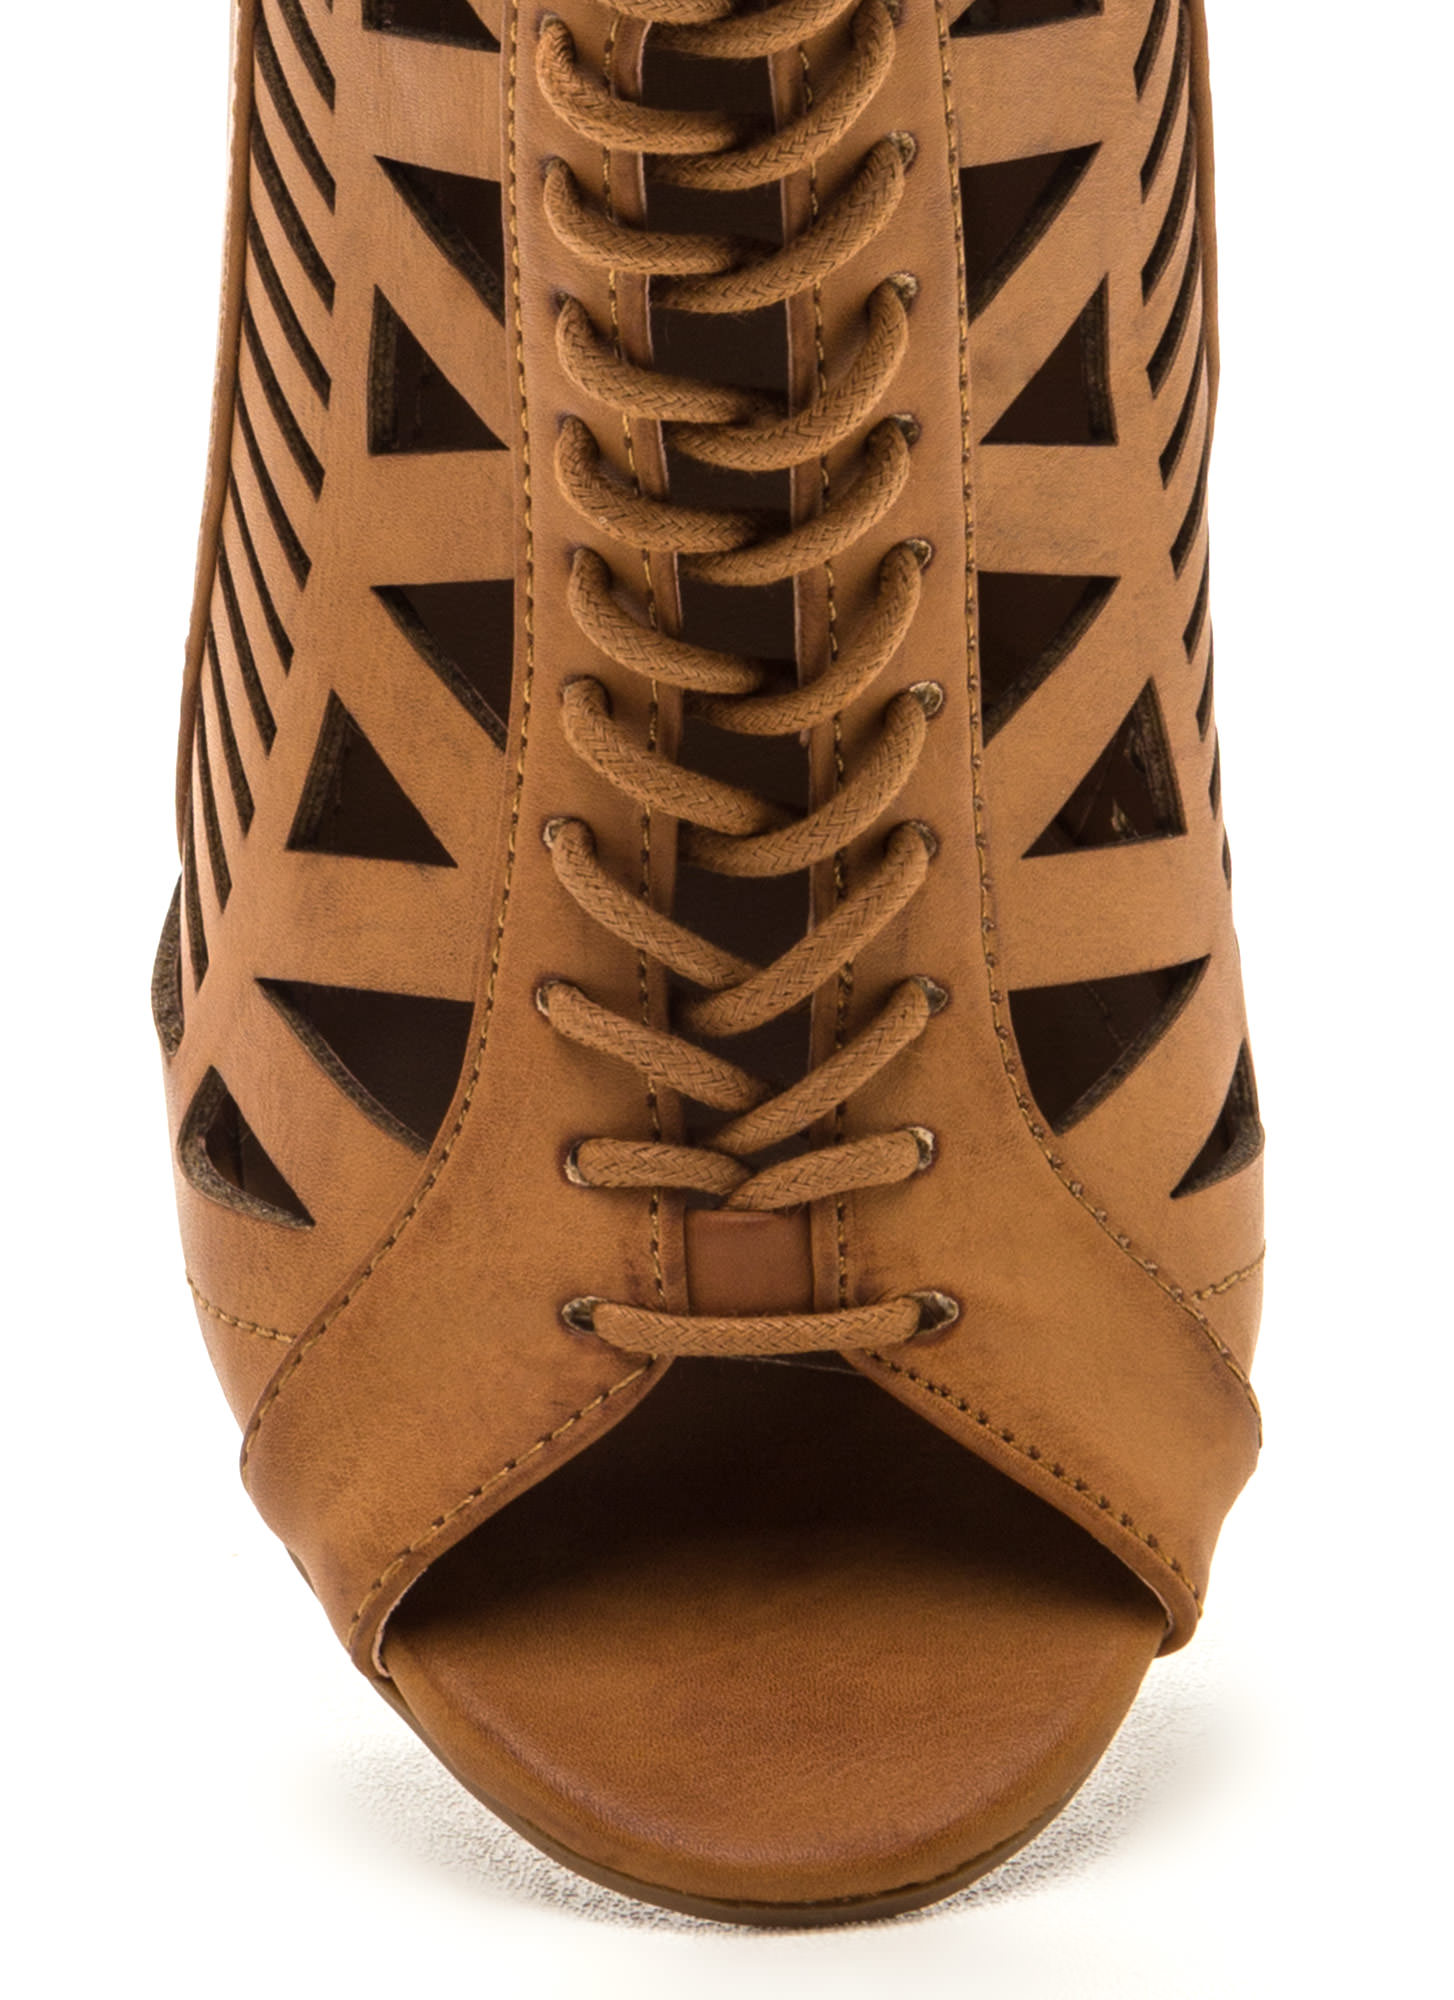 Total Perfection Lace-Up Chunky Heels TAN